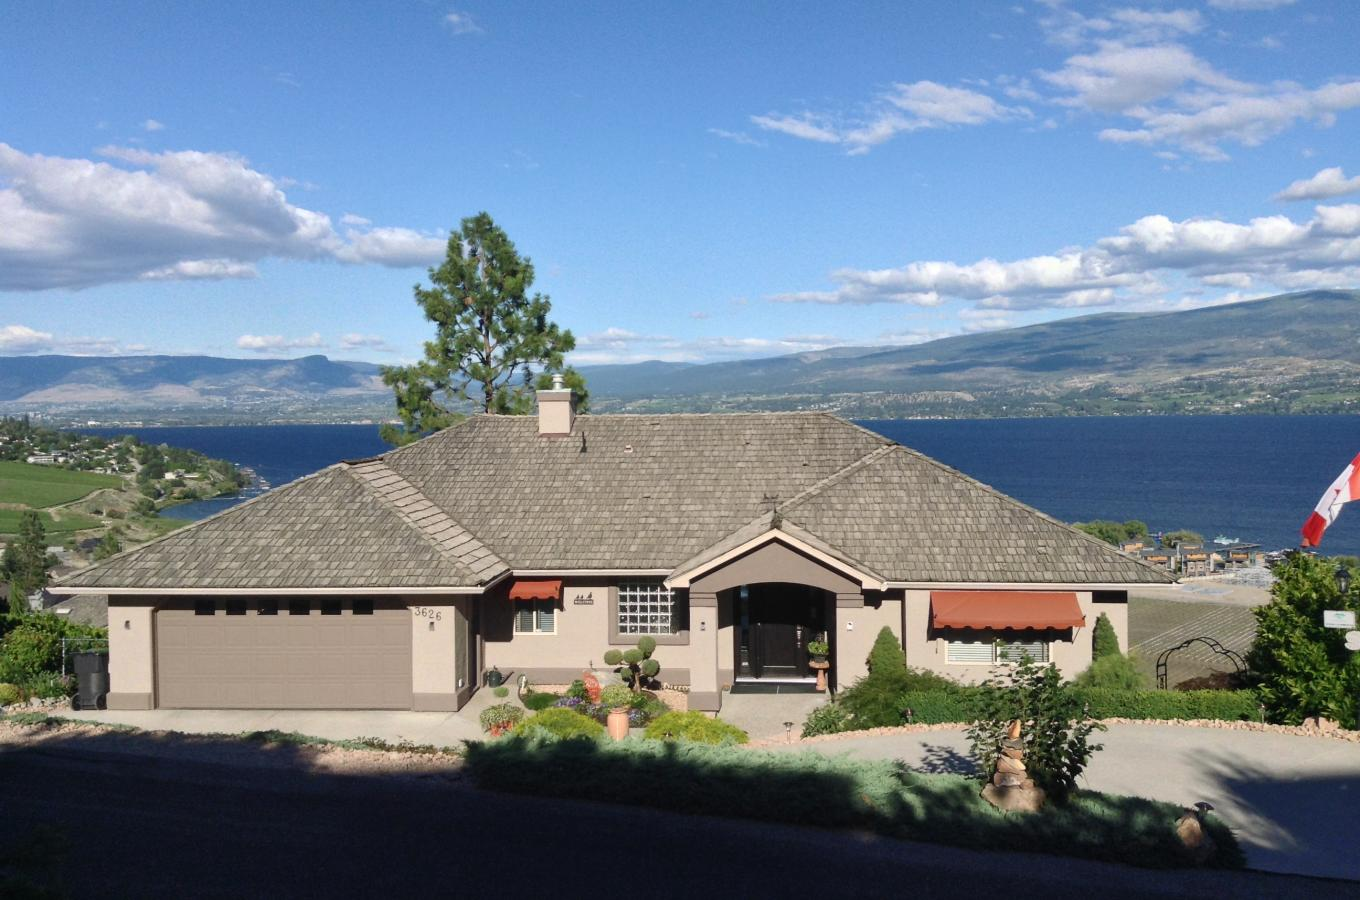 Welcome to A Lakeview Heights B&B overlooking Lake Okanagan